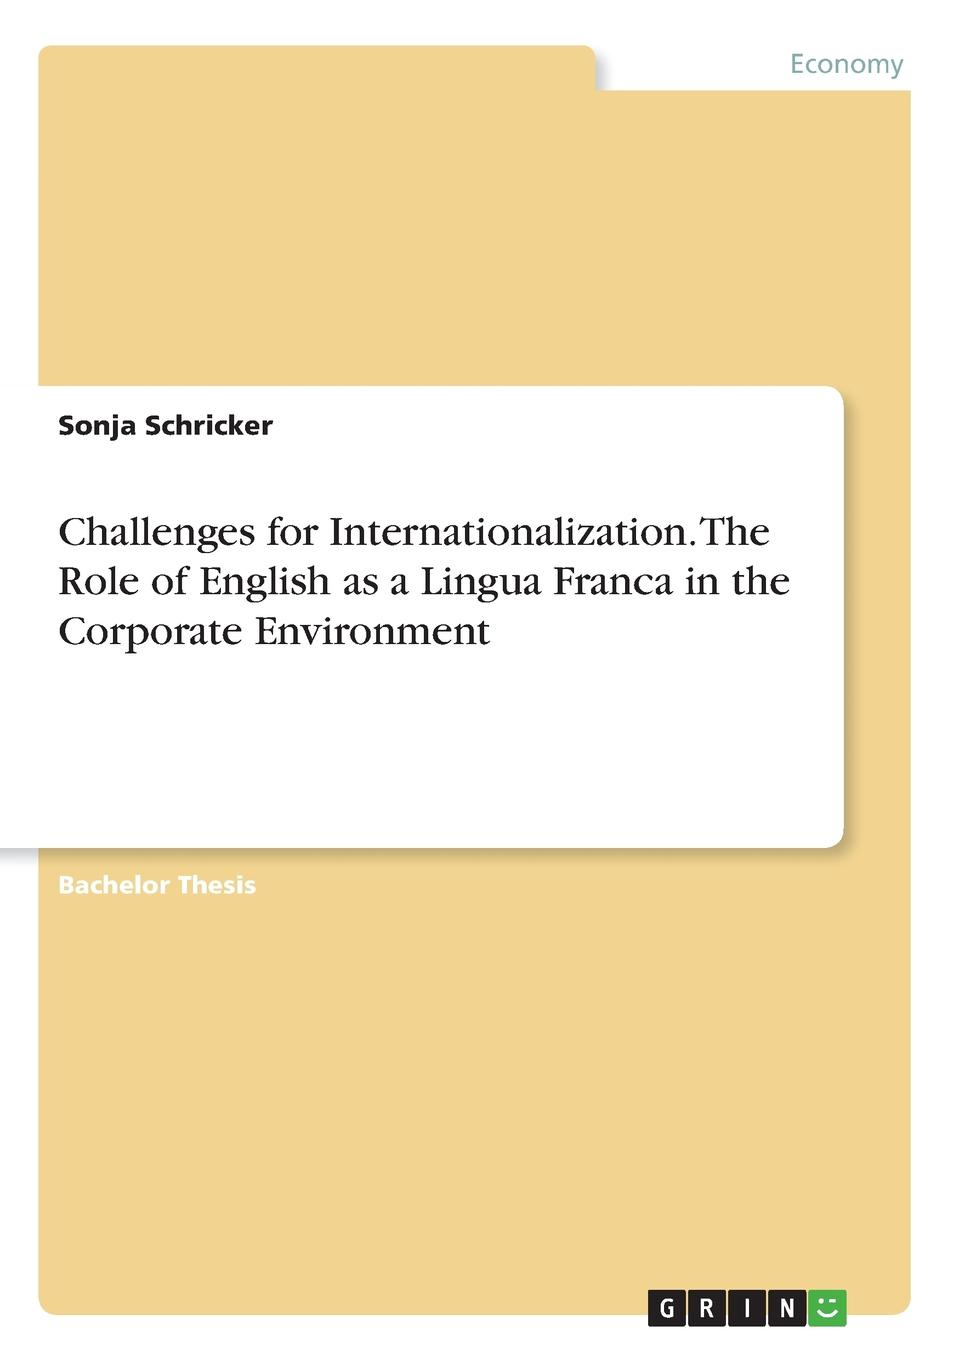 Sonja Schricker Challenges for Internationalization. The Role of English as a Lingua Franca in the Corporate Environment language use and communication of mdgs